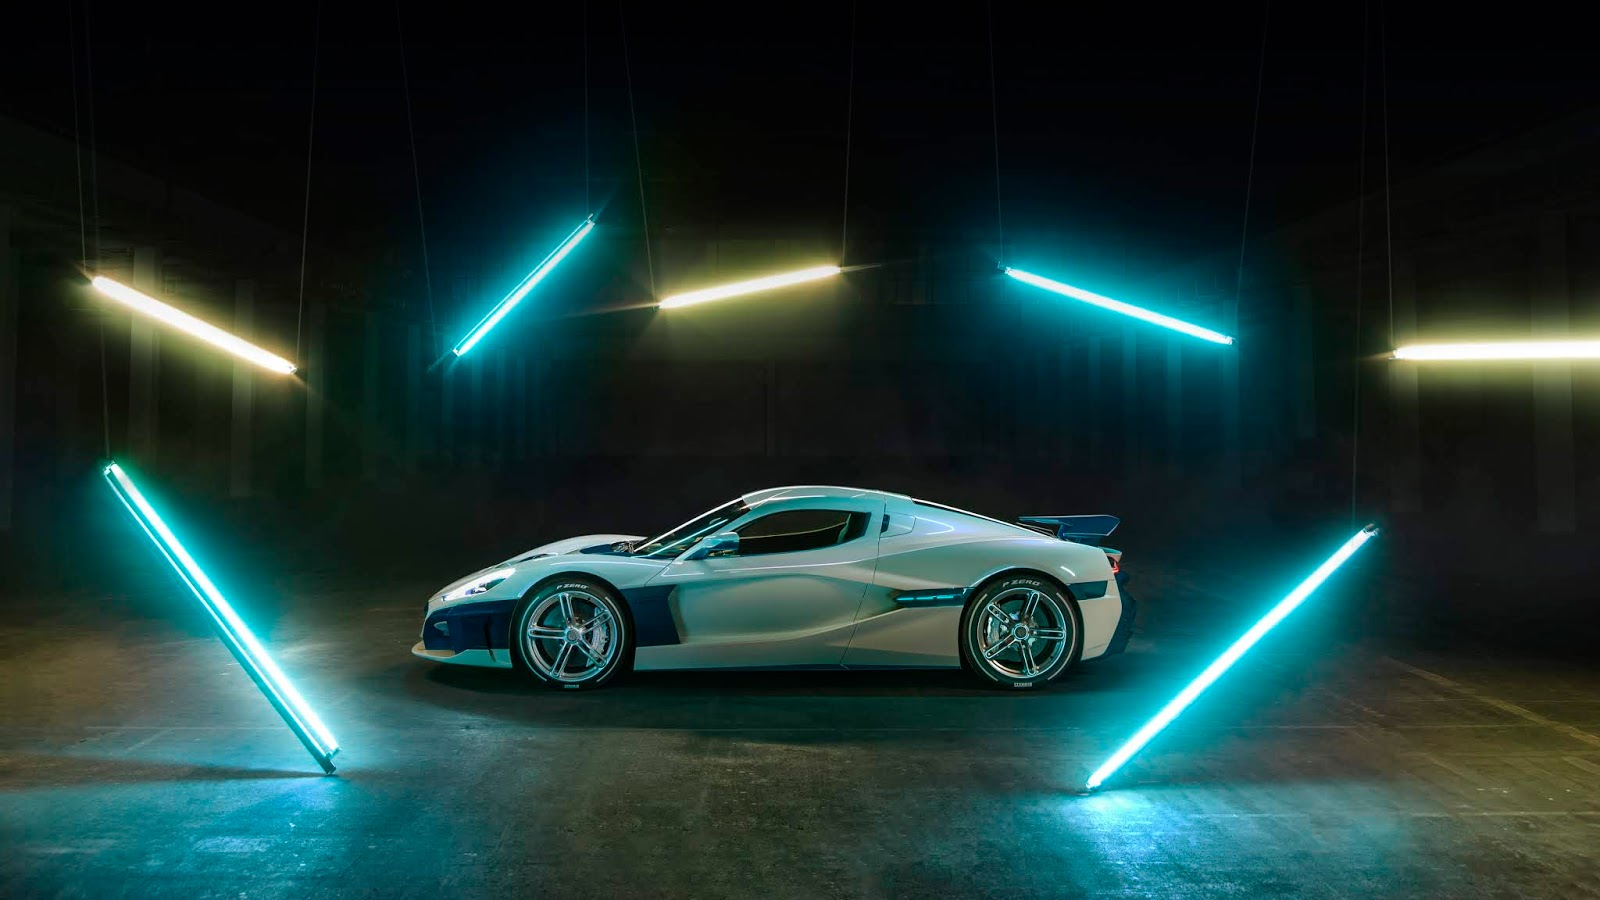 C TWO Side Rimac C Two. Η νέα φυλή στα hypercars, έρχεται με 1900 ίππους. C Two, Electric cars, hypercar, Rimac, zblog